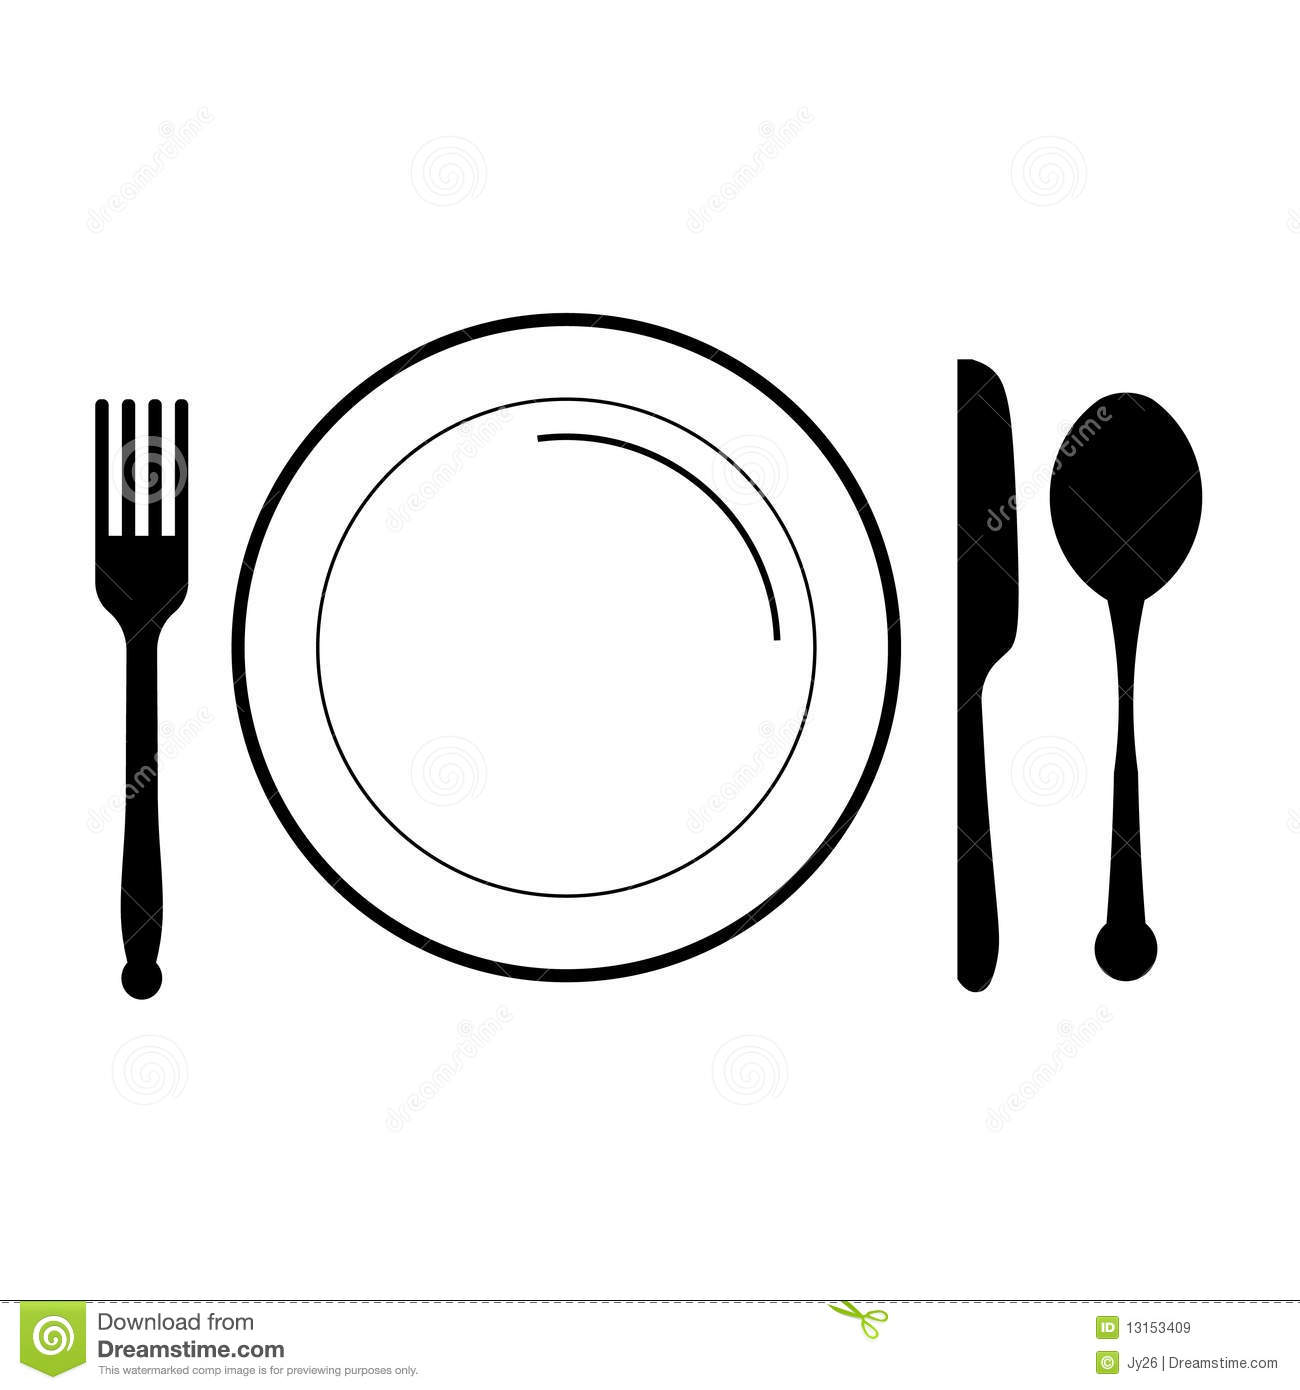 Bowl clipart fork Black Clip Plate and food